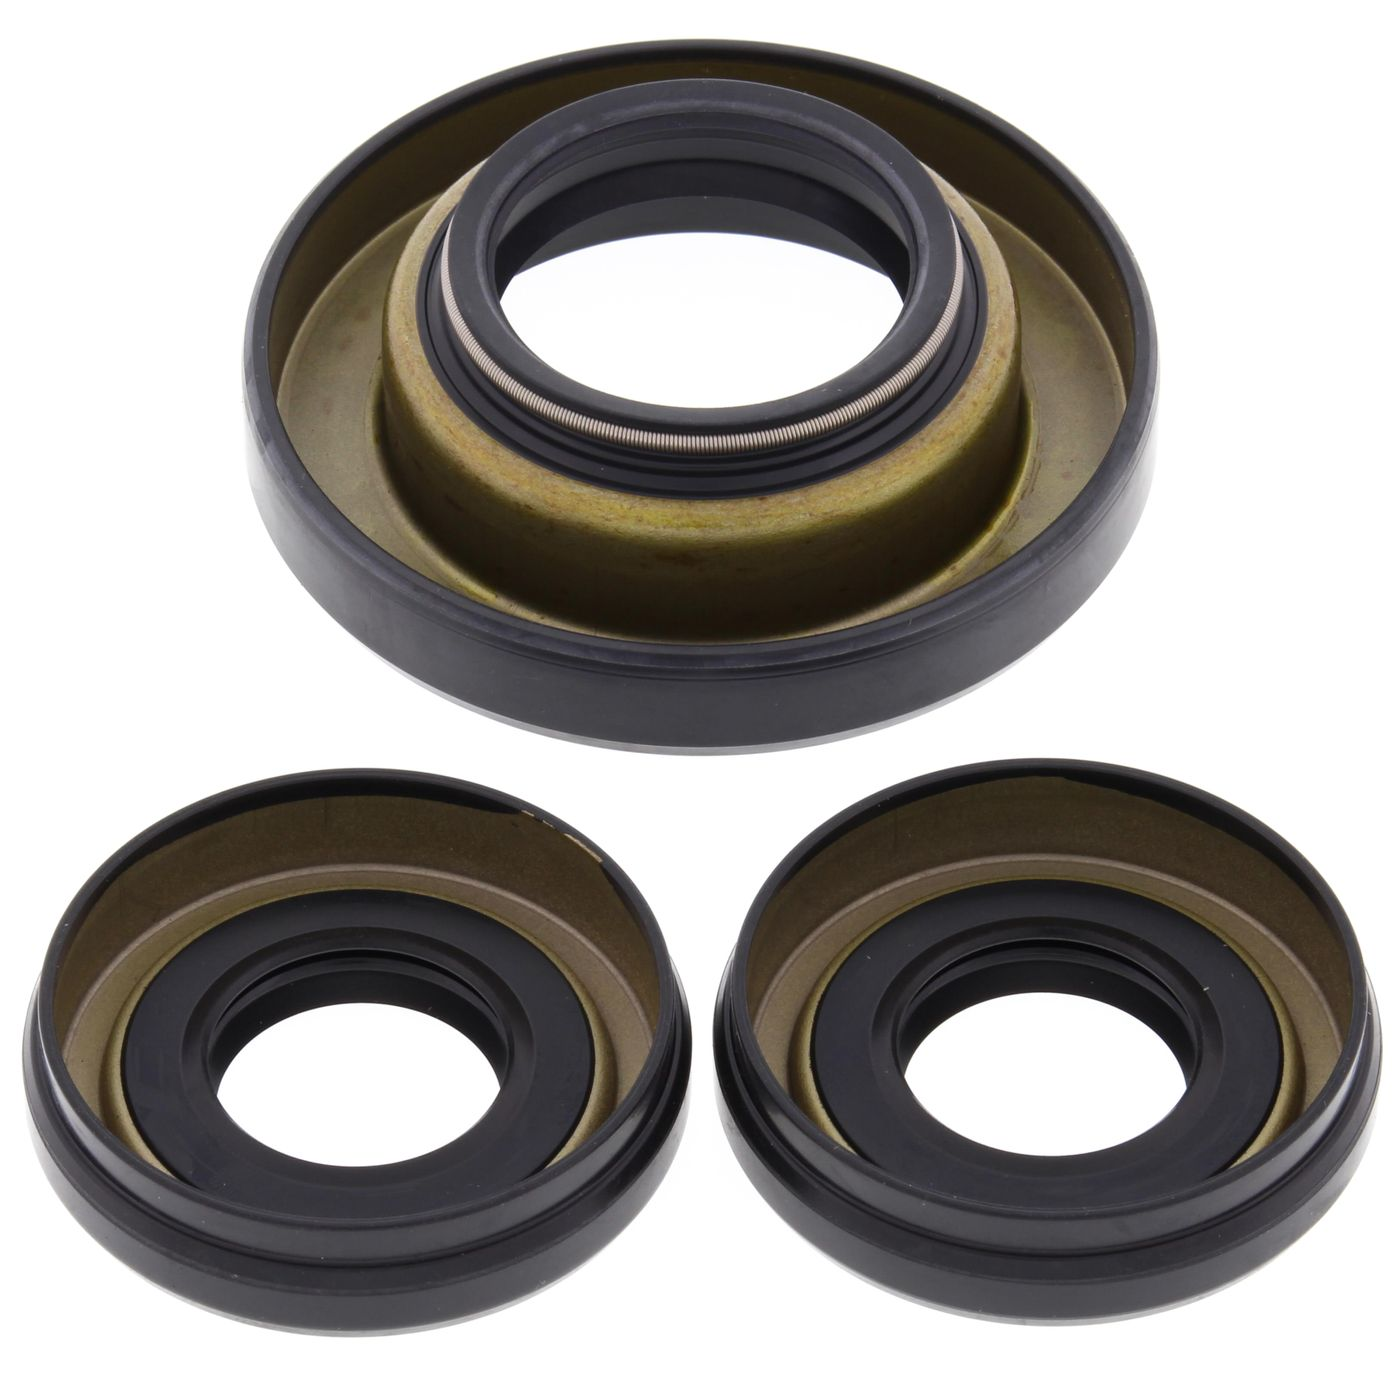 Wrp Diff Seal Kits - WRP252004-5 image